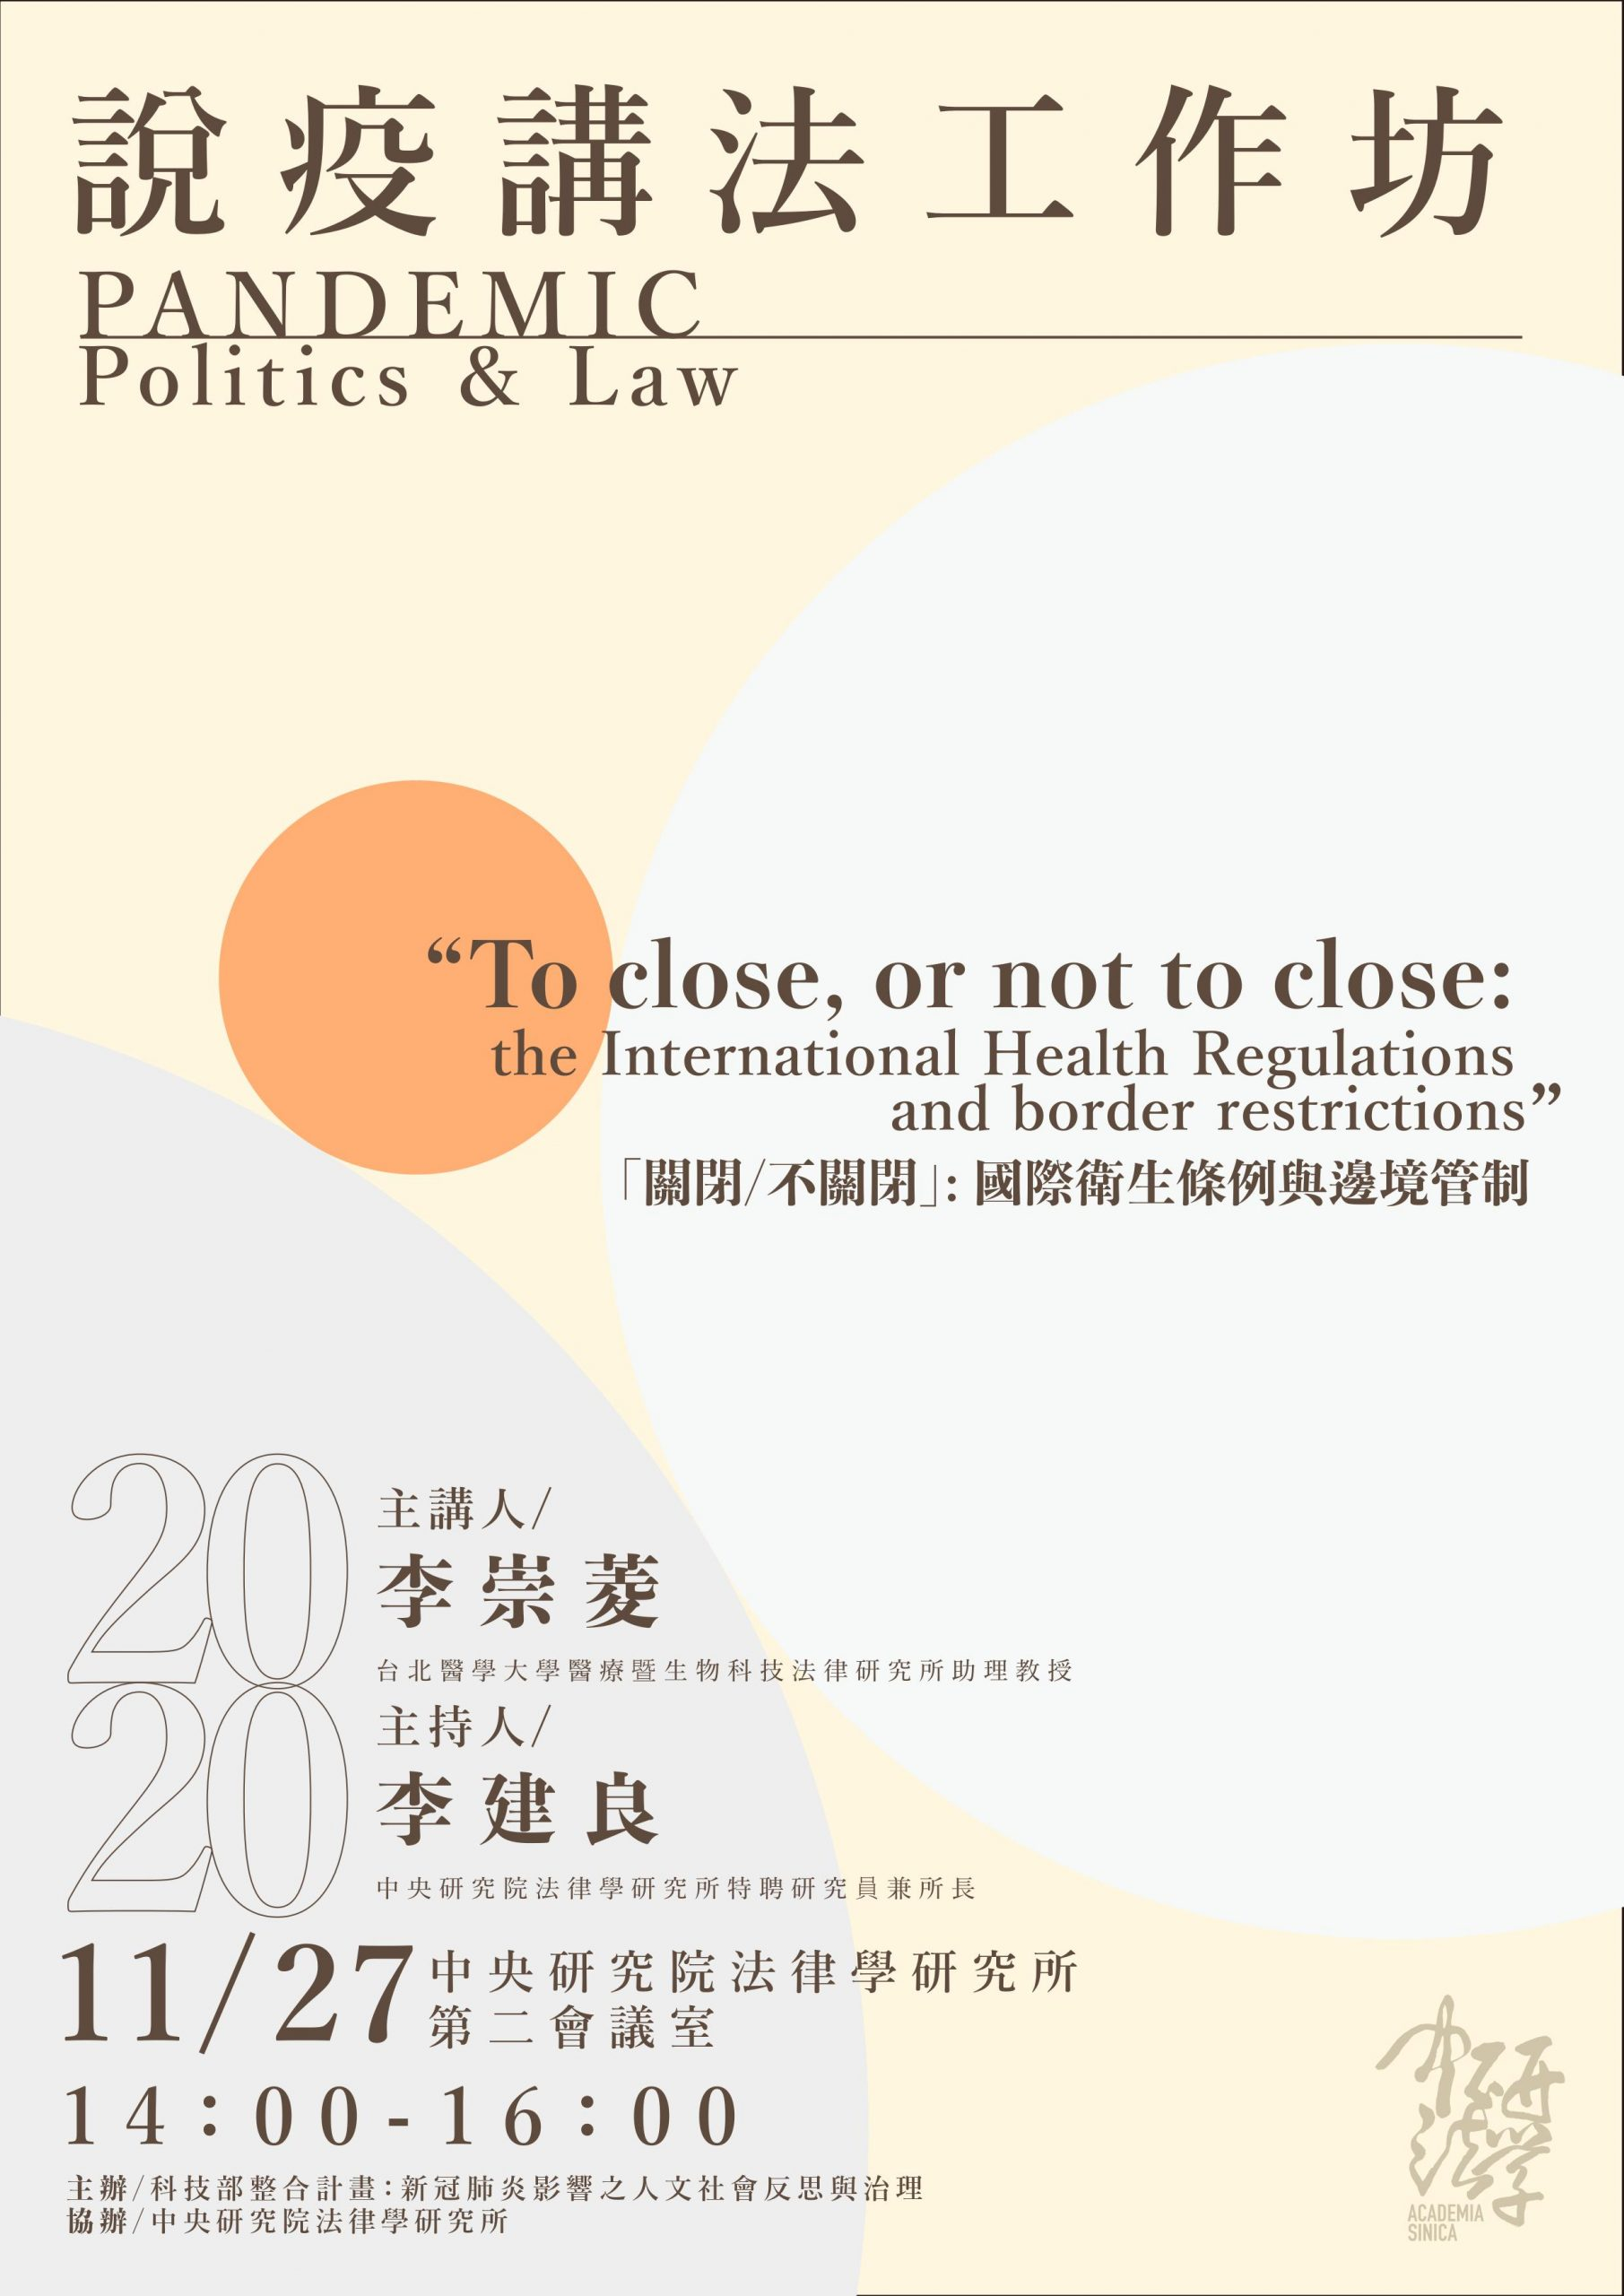 說疫講法工作坊(四):「To close, or not to close: the International Health Regulations and border restrictions」「關閉/不關閉」: 國際衛生條例與邊境管制